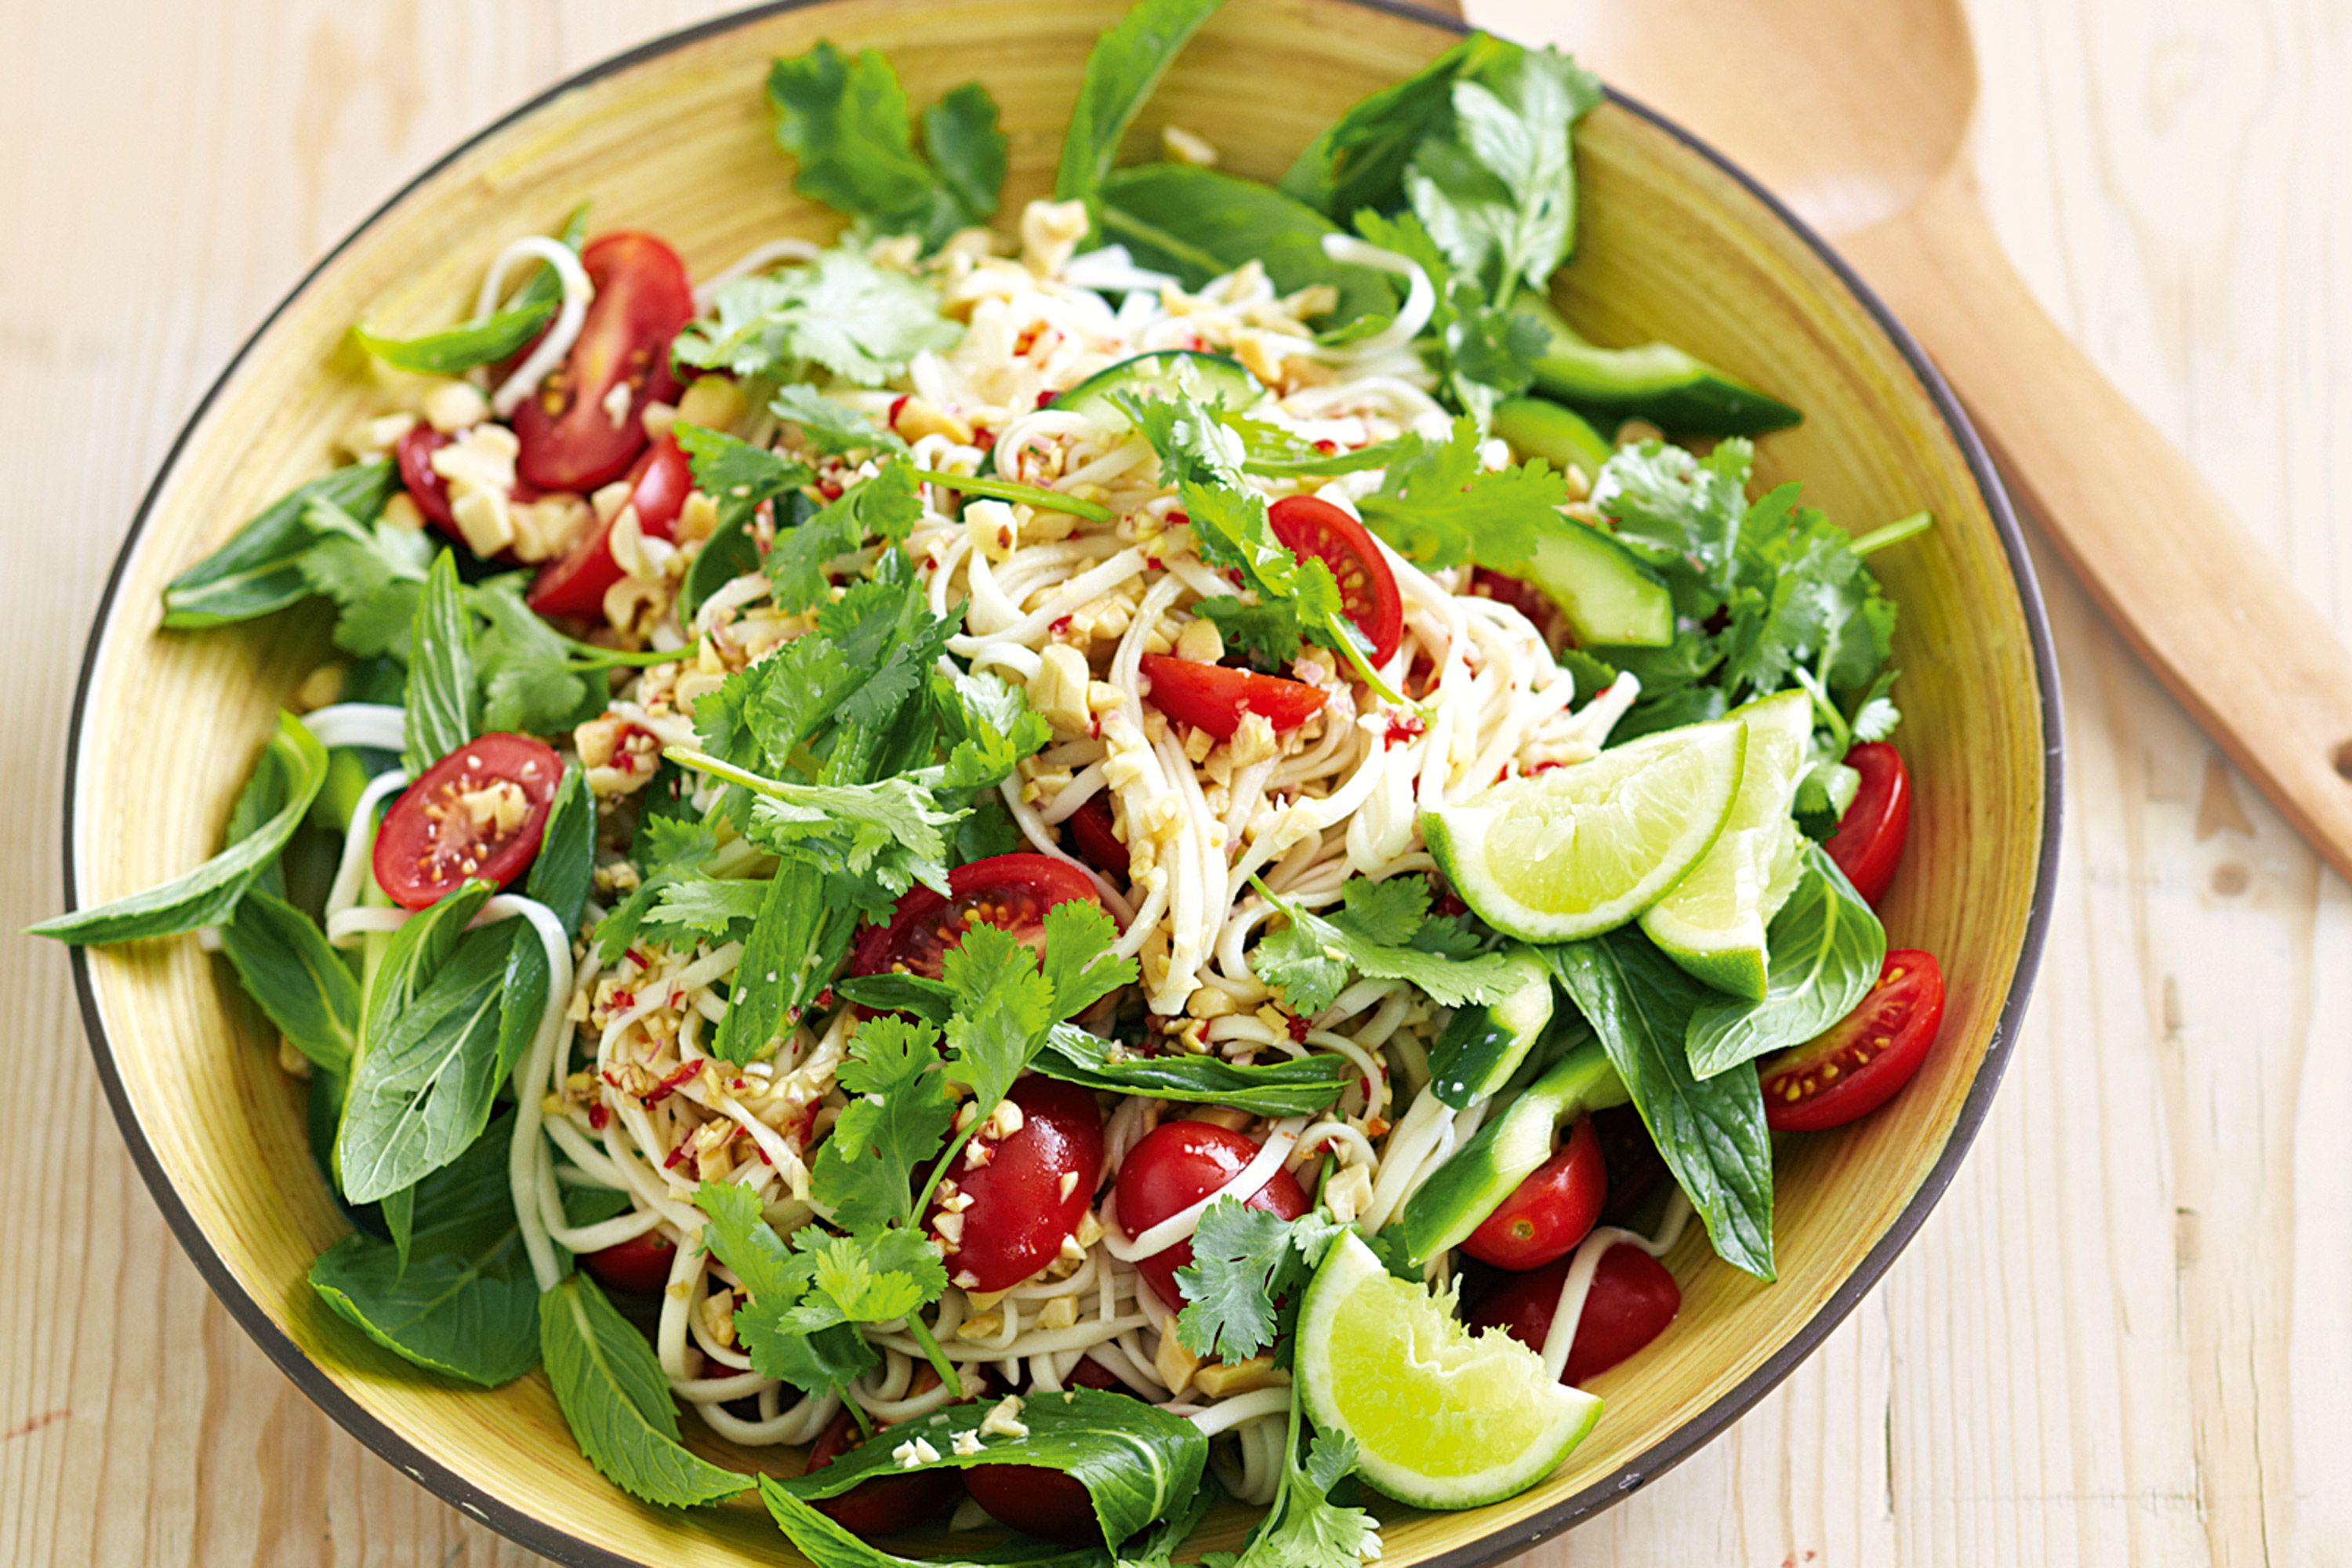 Take the fixings to work and make this zesty Thai salad for lunch. It's a no-cook no-brainer.  http://www.taste.com.au/recipes/28763/thai+noodle+salad?ref=collections,lunch-recipes